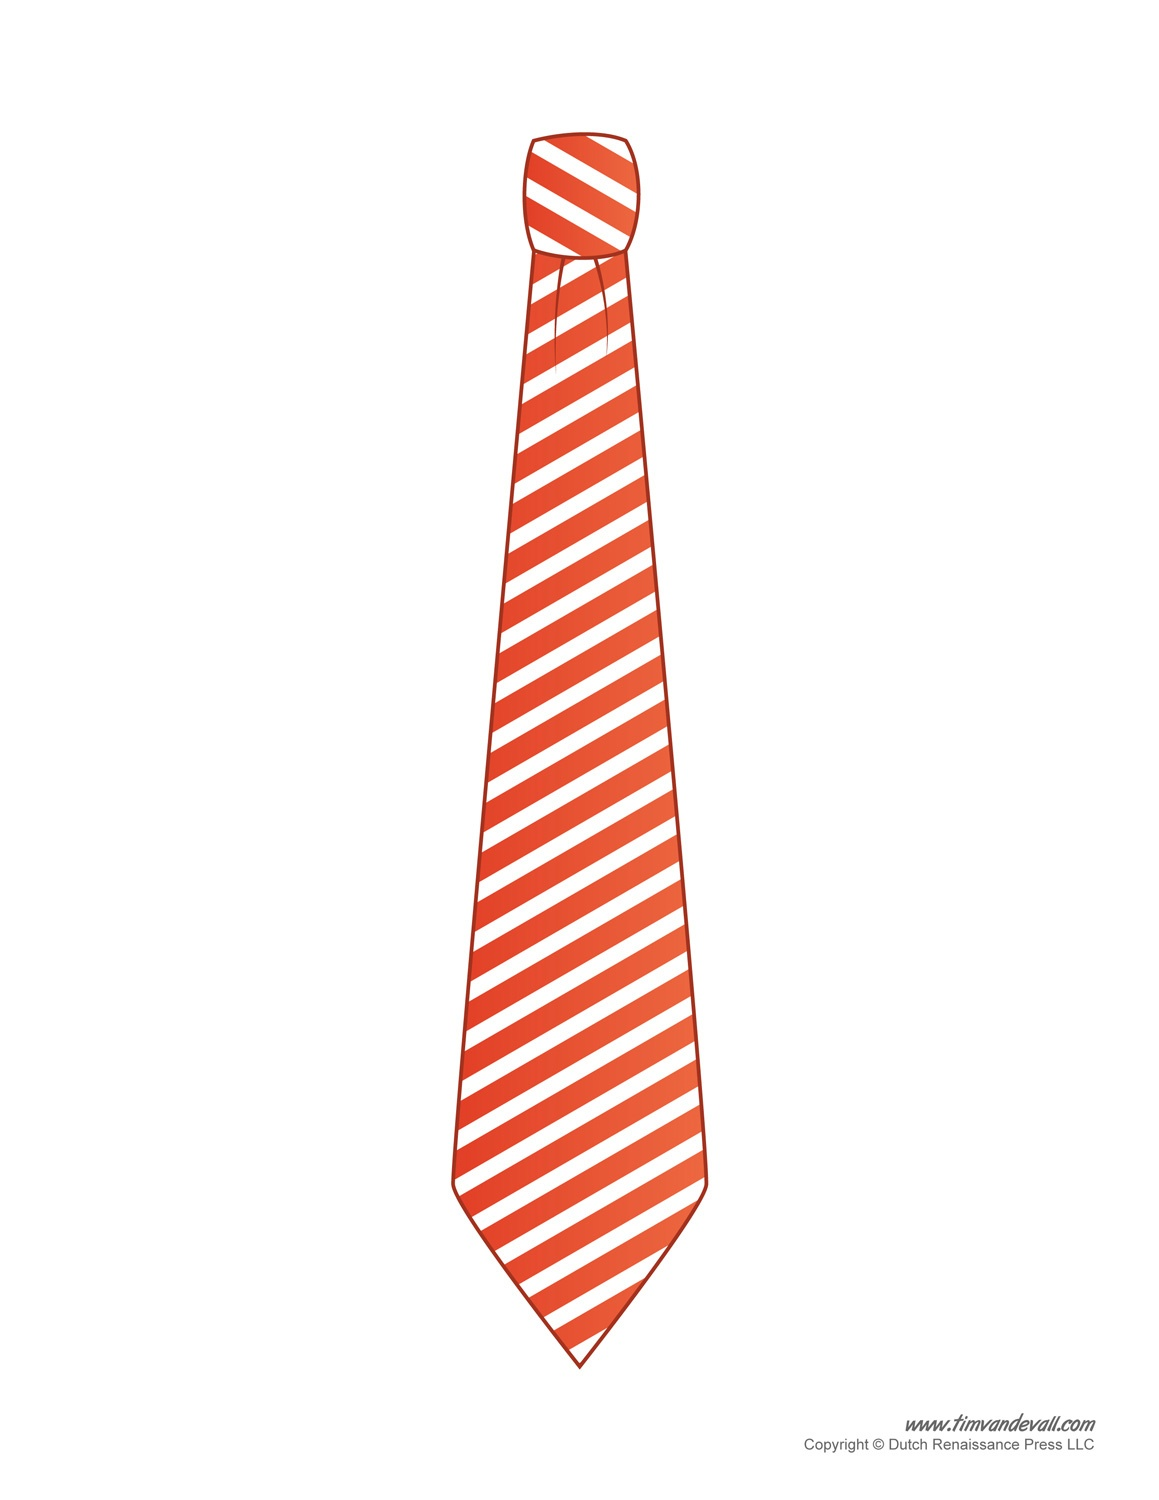 Paper Tie Templates For Kids - Free Printable Tie Template